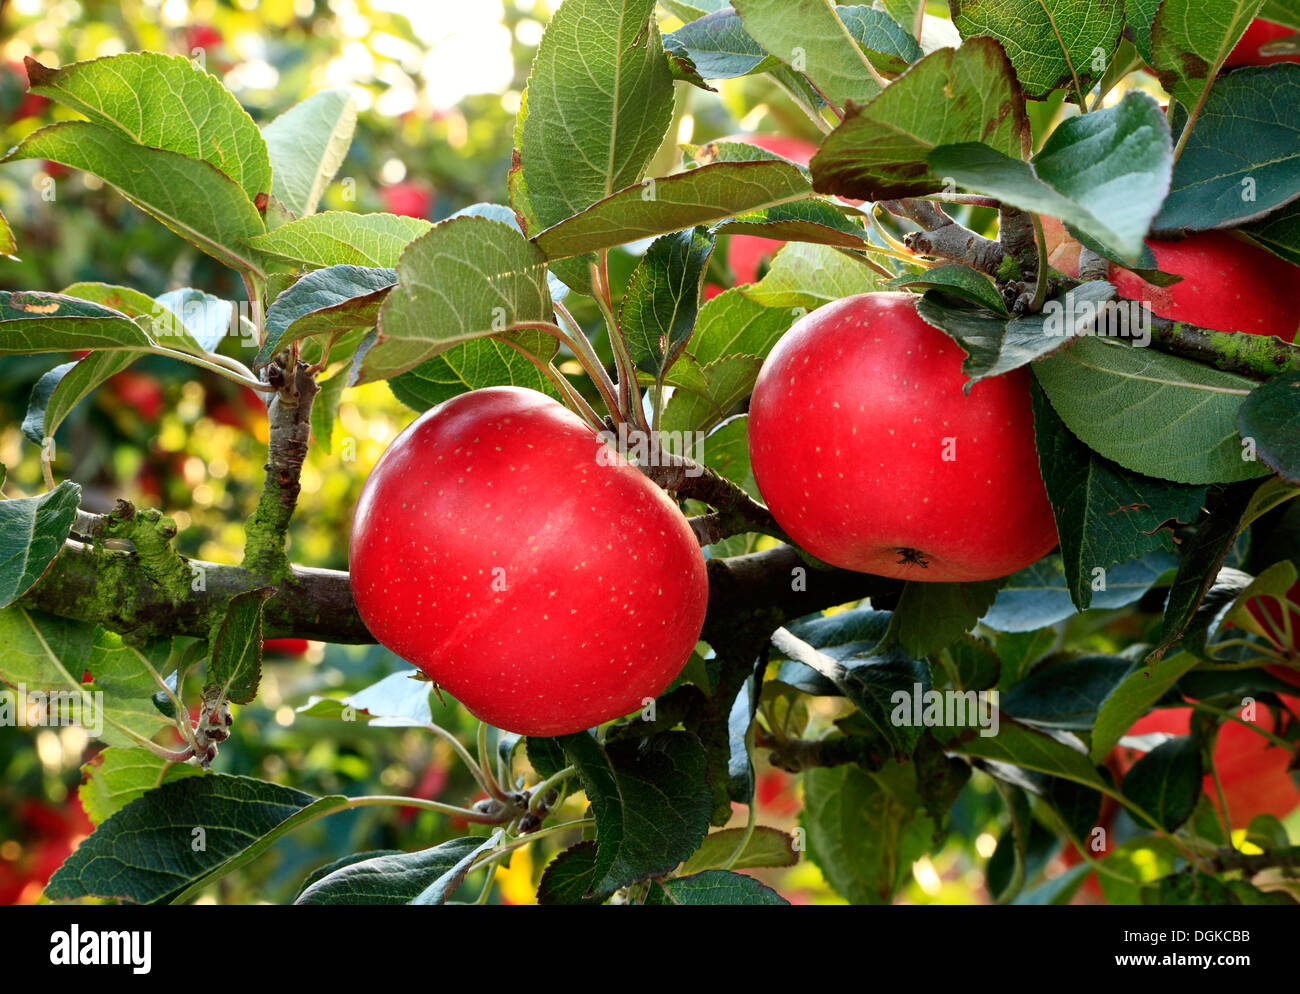 Apple 'Discovery', malus domestica, apples, named variety varieties growing on tree - Stock Image